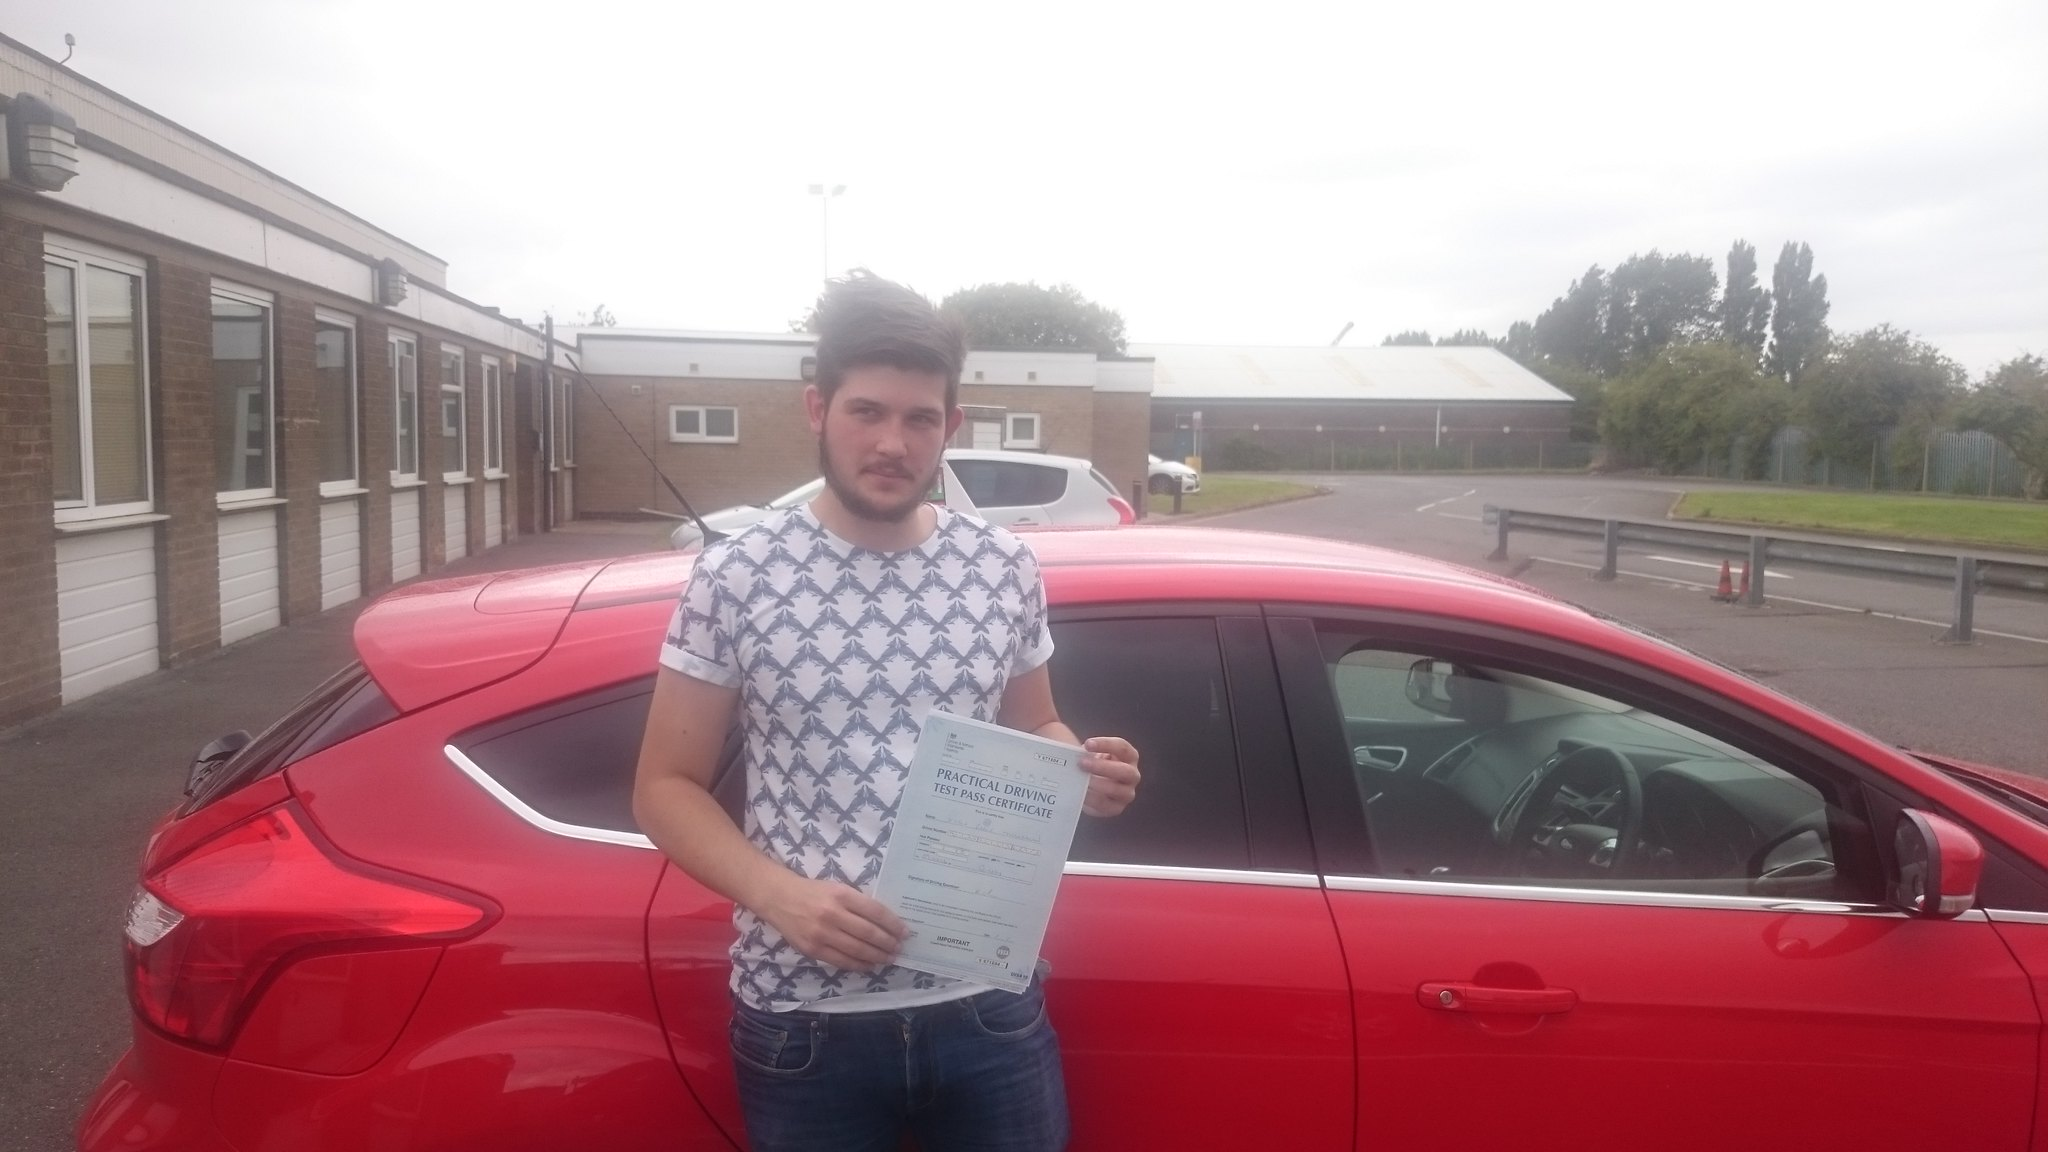 Kieran McLachlan passes driving test in grimsby with 21st Century Driving